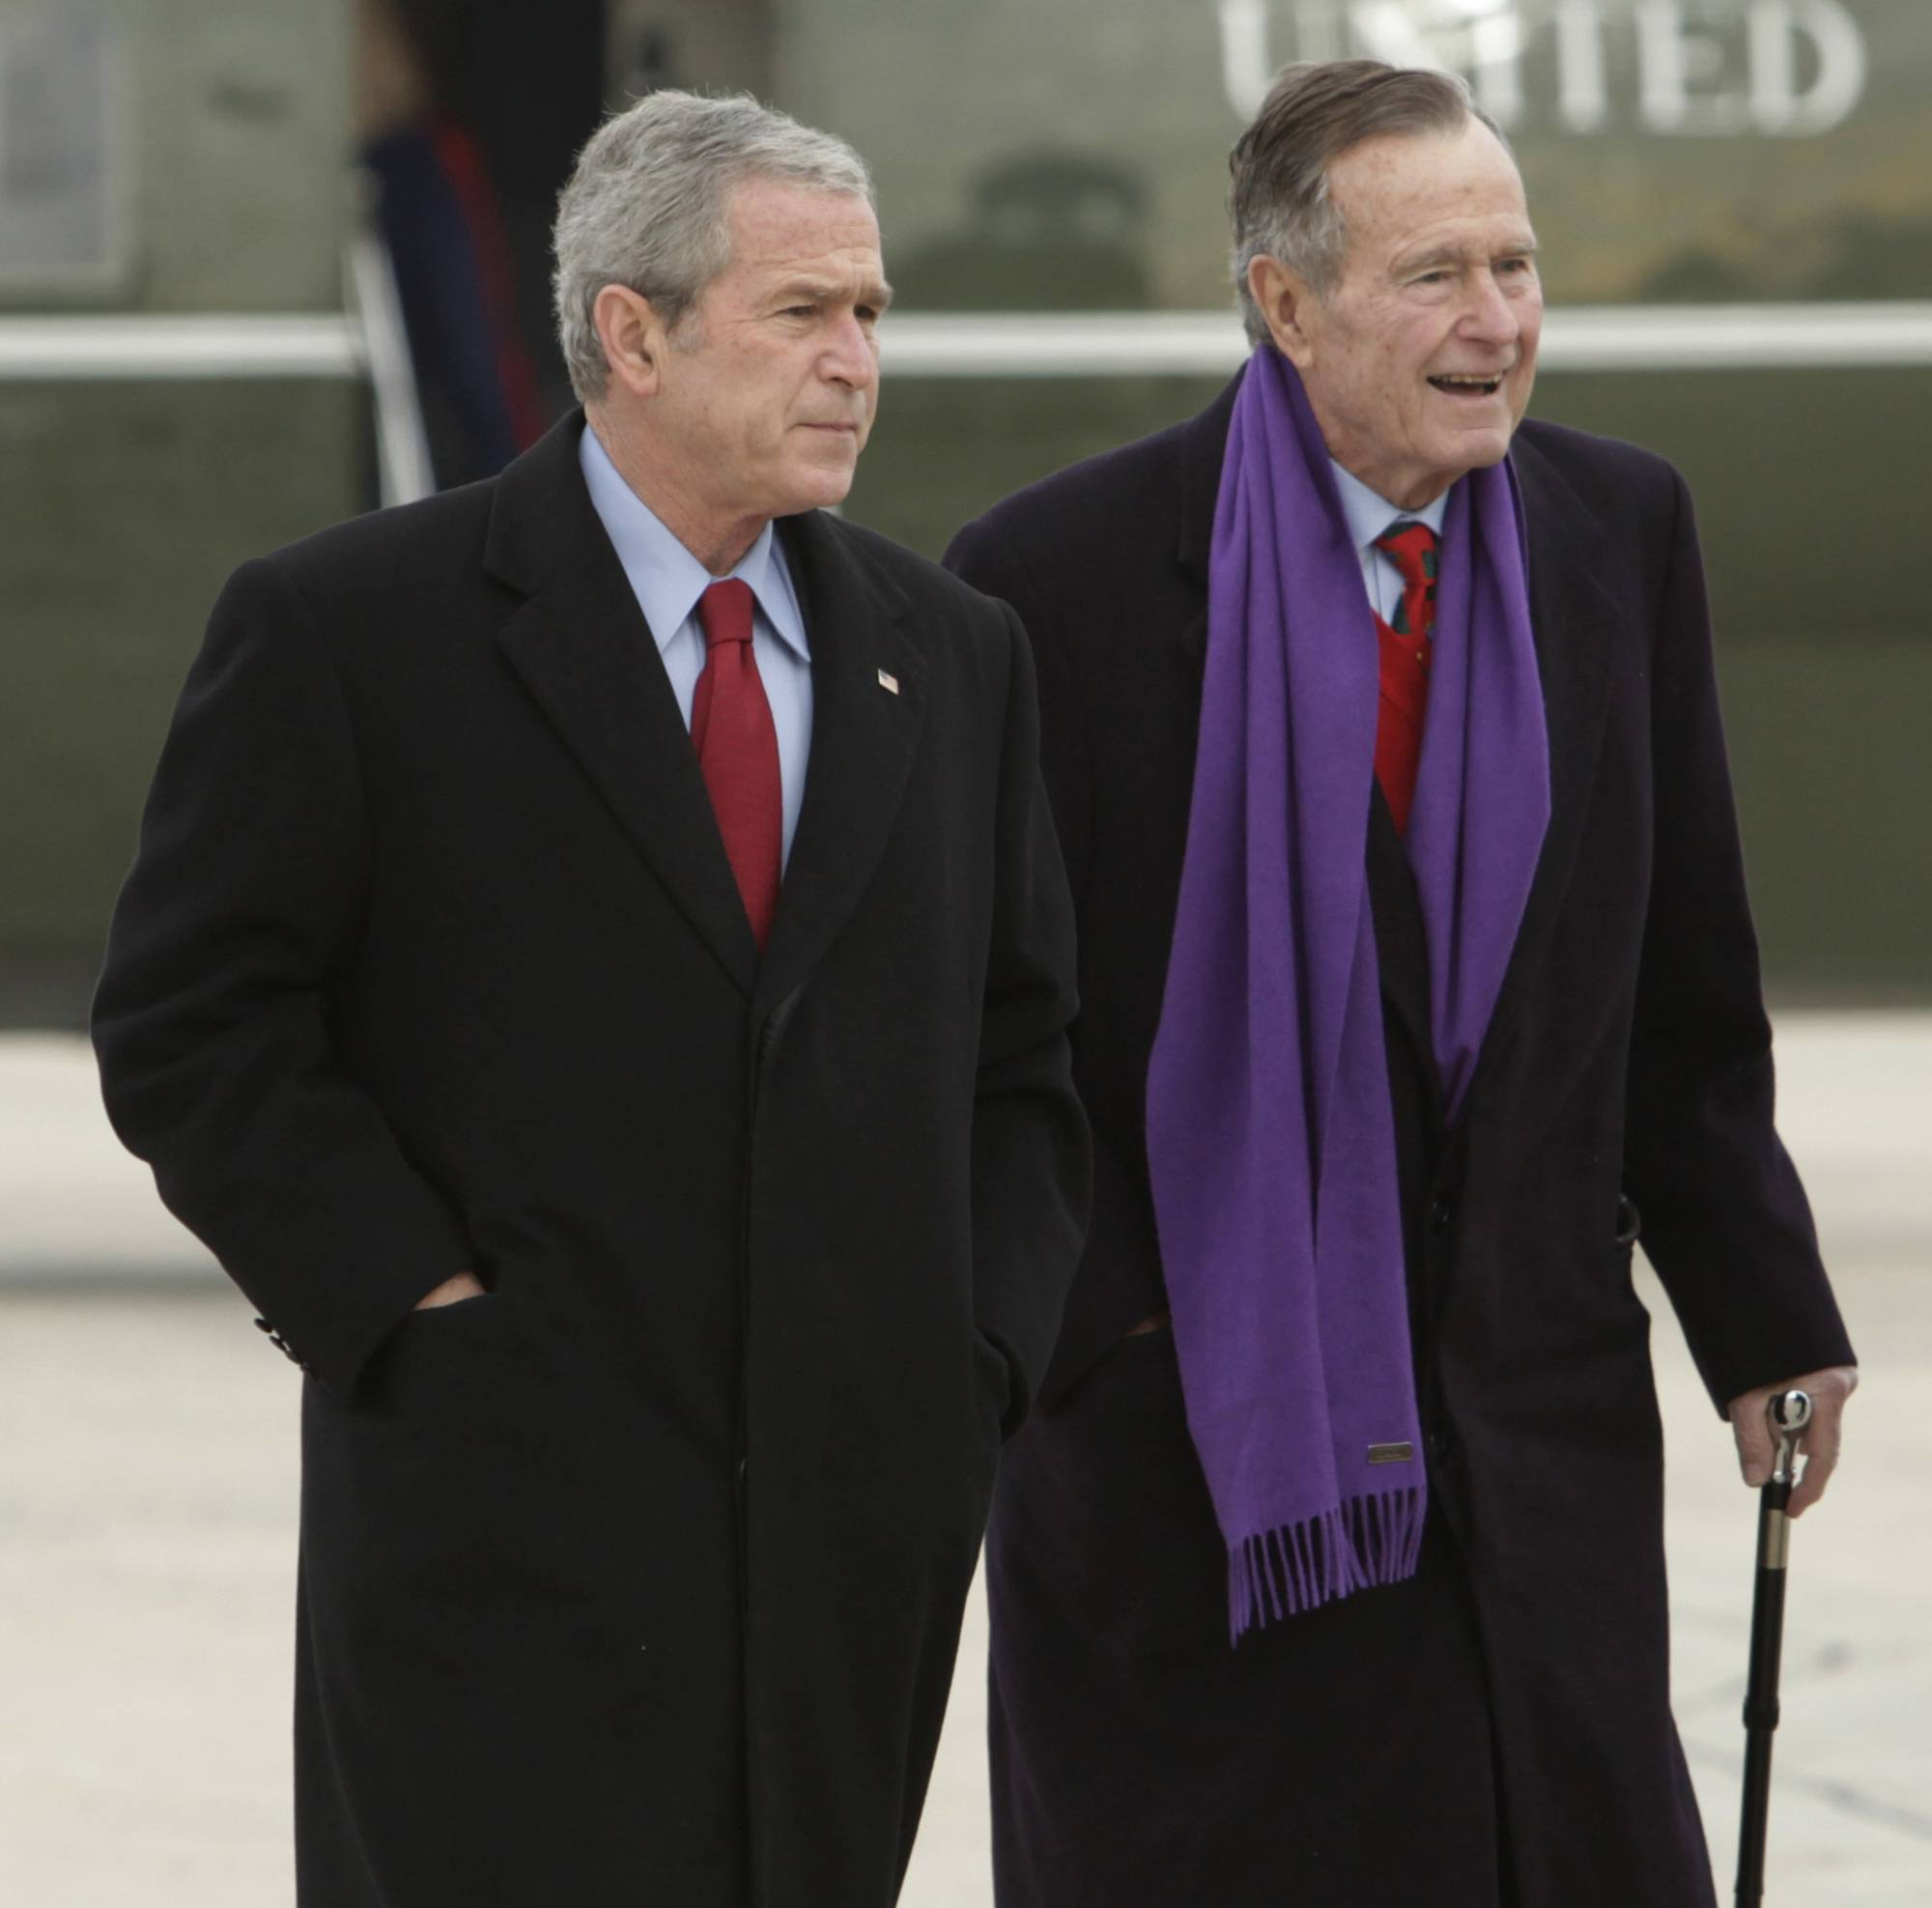 Former Presidents George W. Bush, left, and George H.W. Bush walk together in 2008 at Andrews Air Force Base in Maryland.